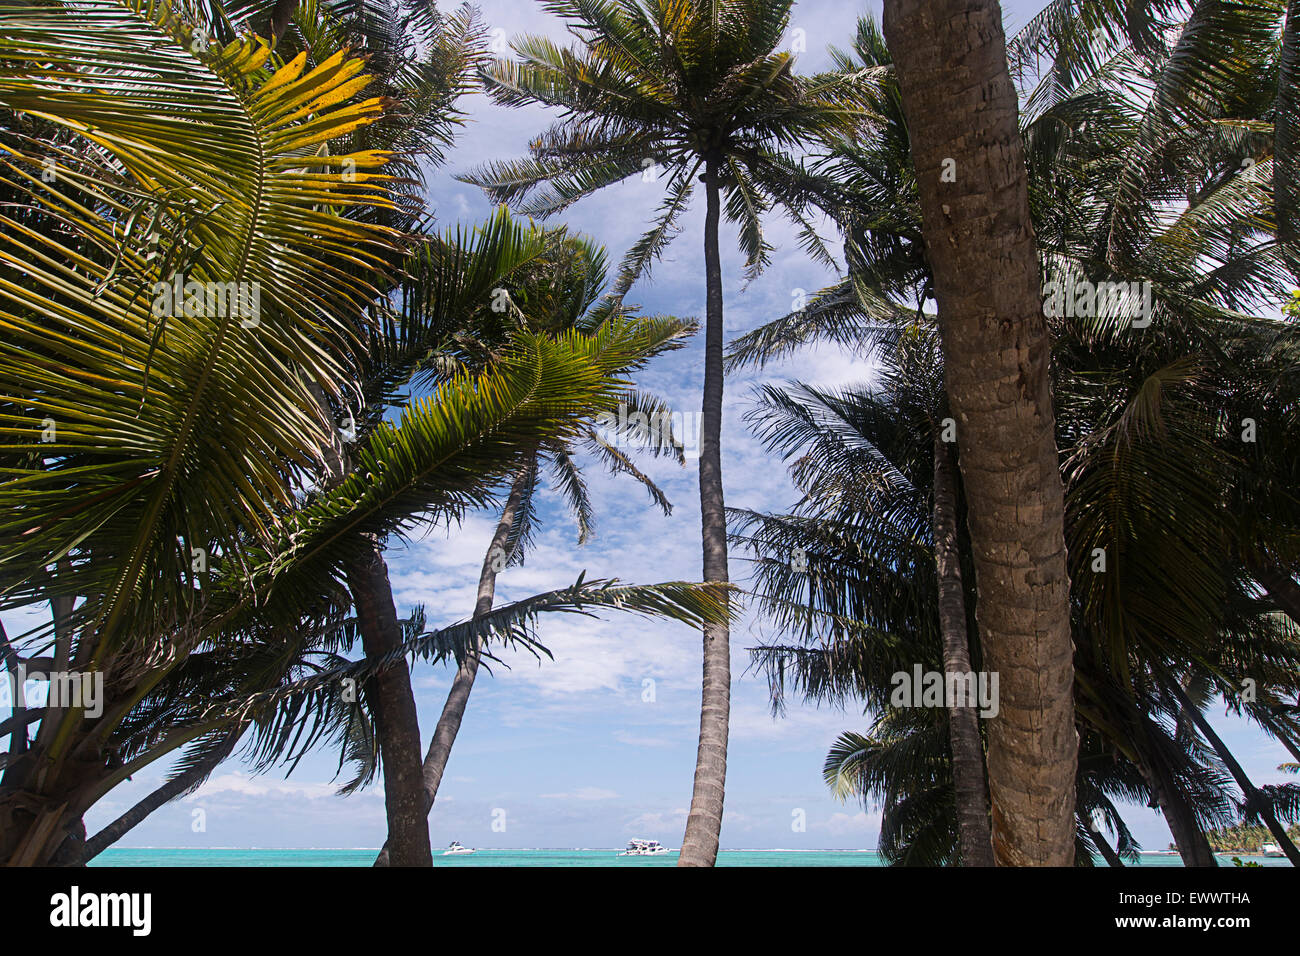 Palm trees on Half Moon caye, Belize - Stock Image